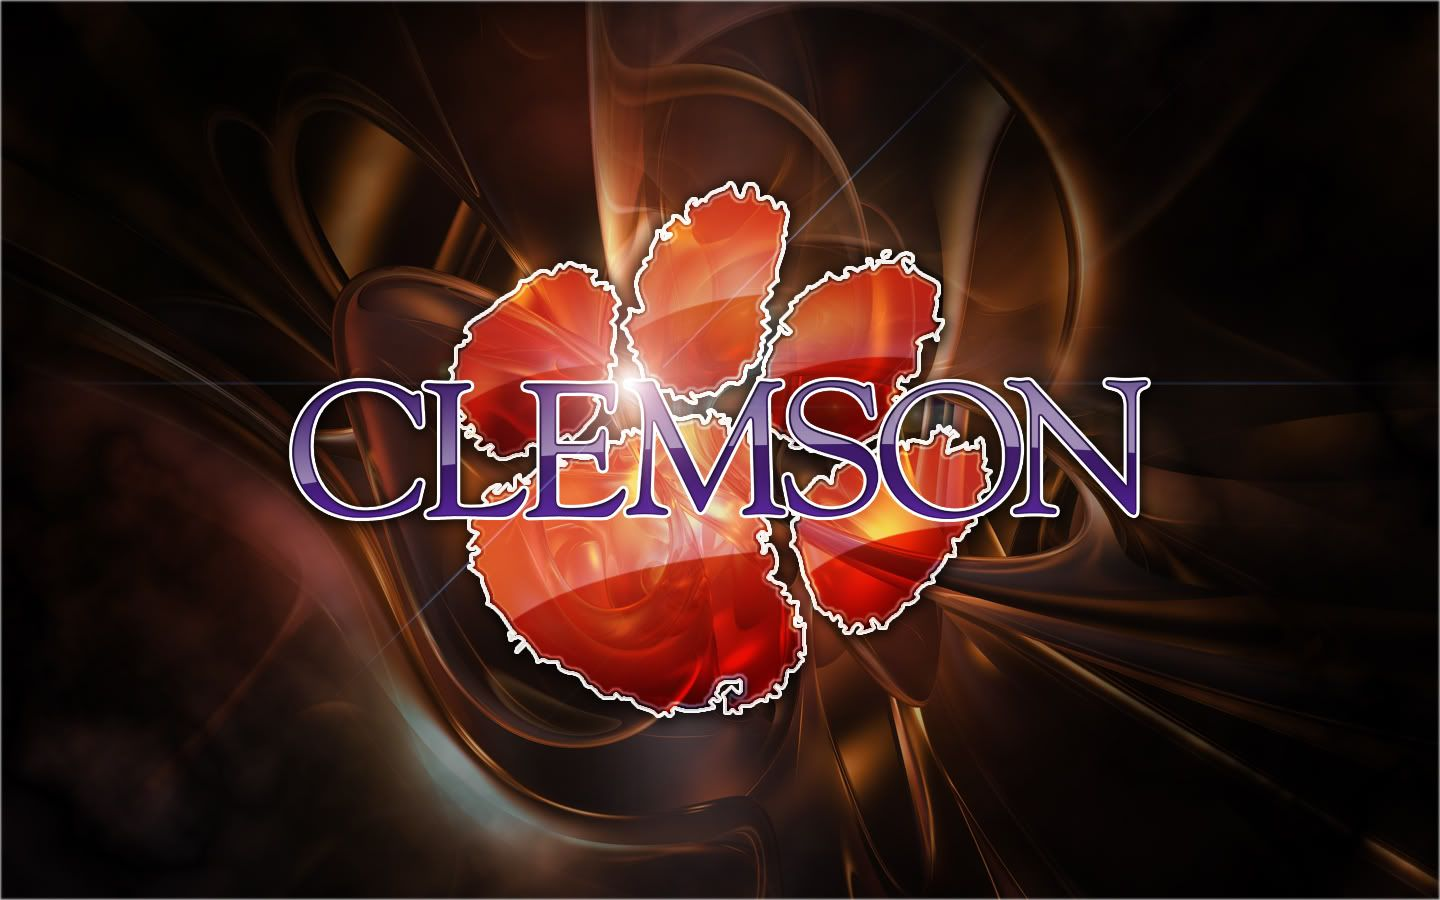 Tigers Clemson Wallpaper Clemson Football Clemson Tigers Wallpaper